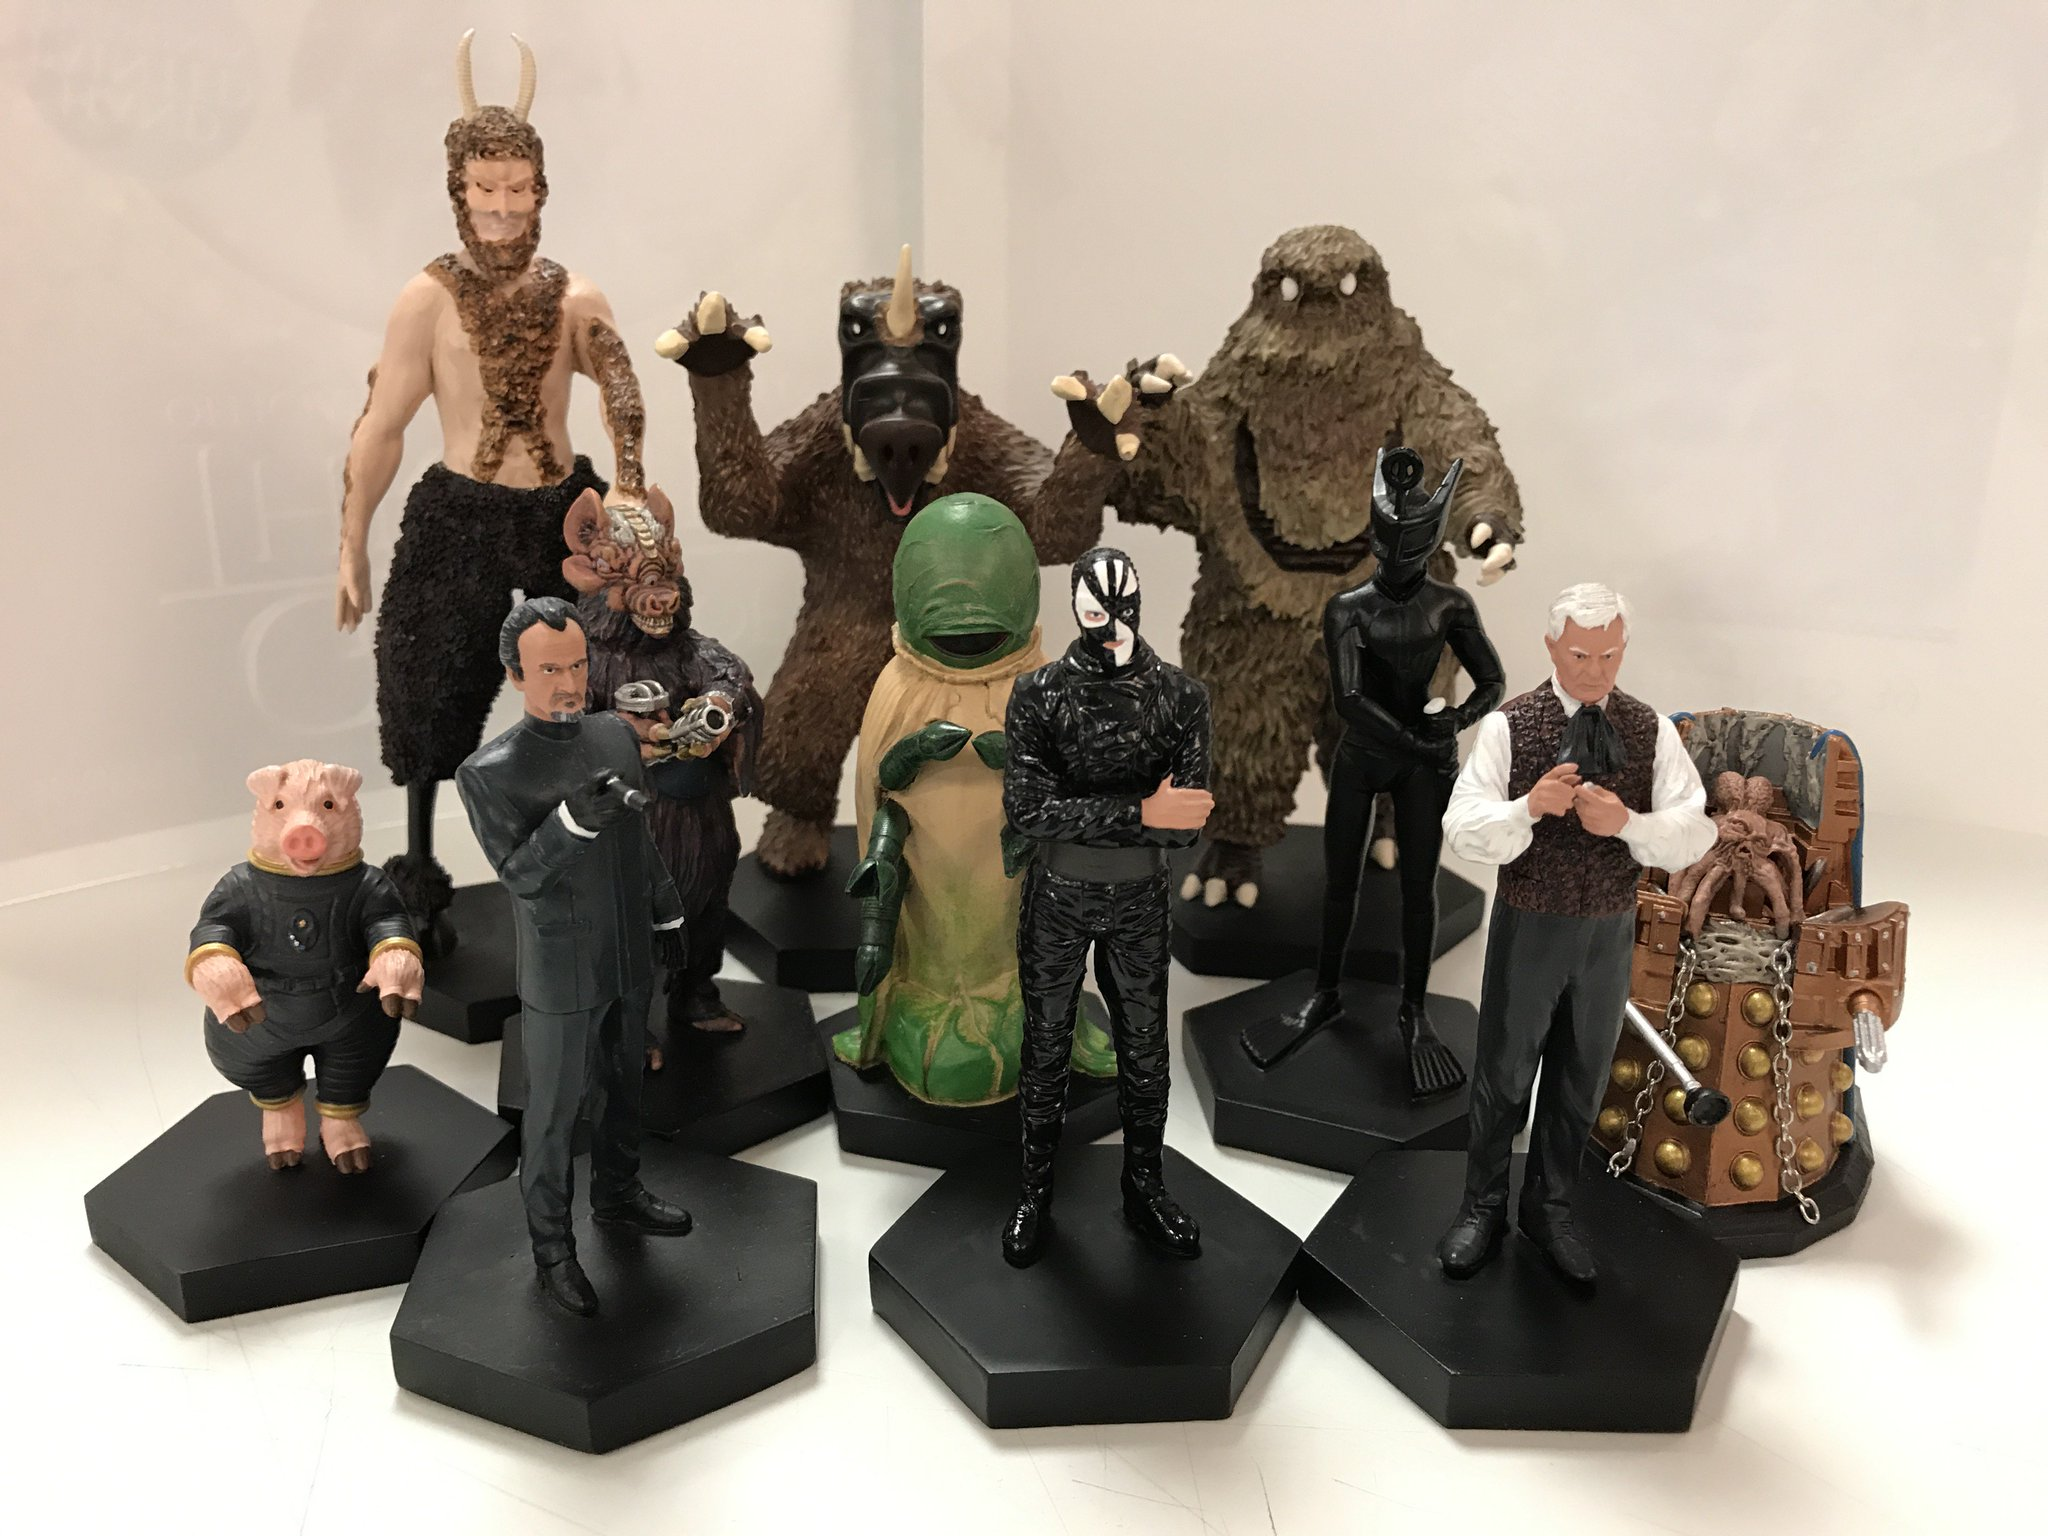 Eaglemoss collection in pictures, Monsters  & villains only DB3zs9bU0AE84wG